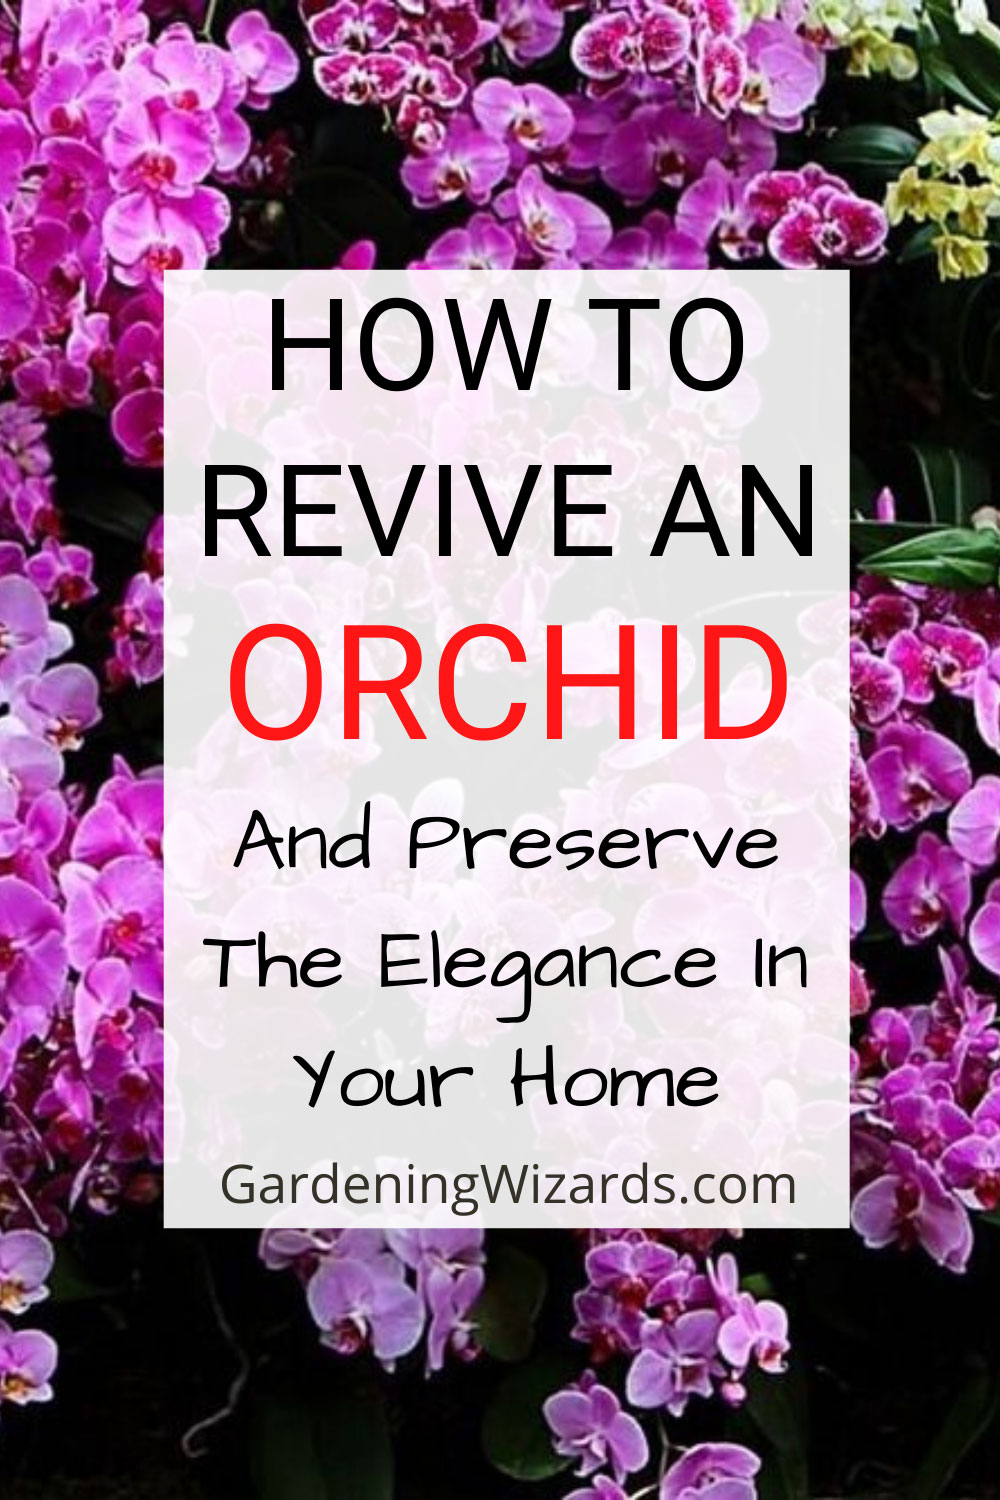 How to Revive An Orchid